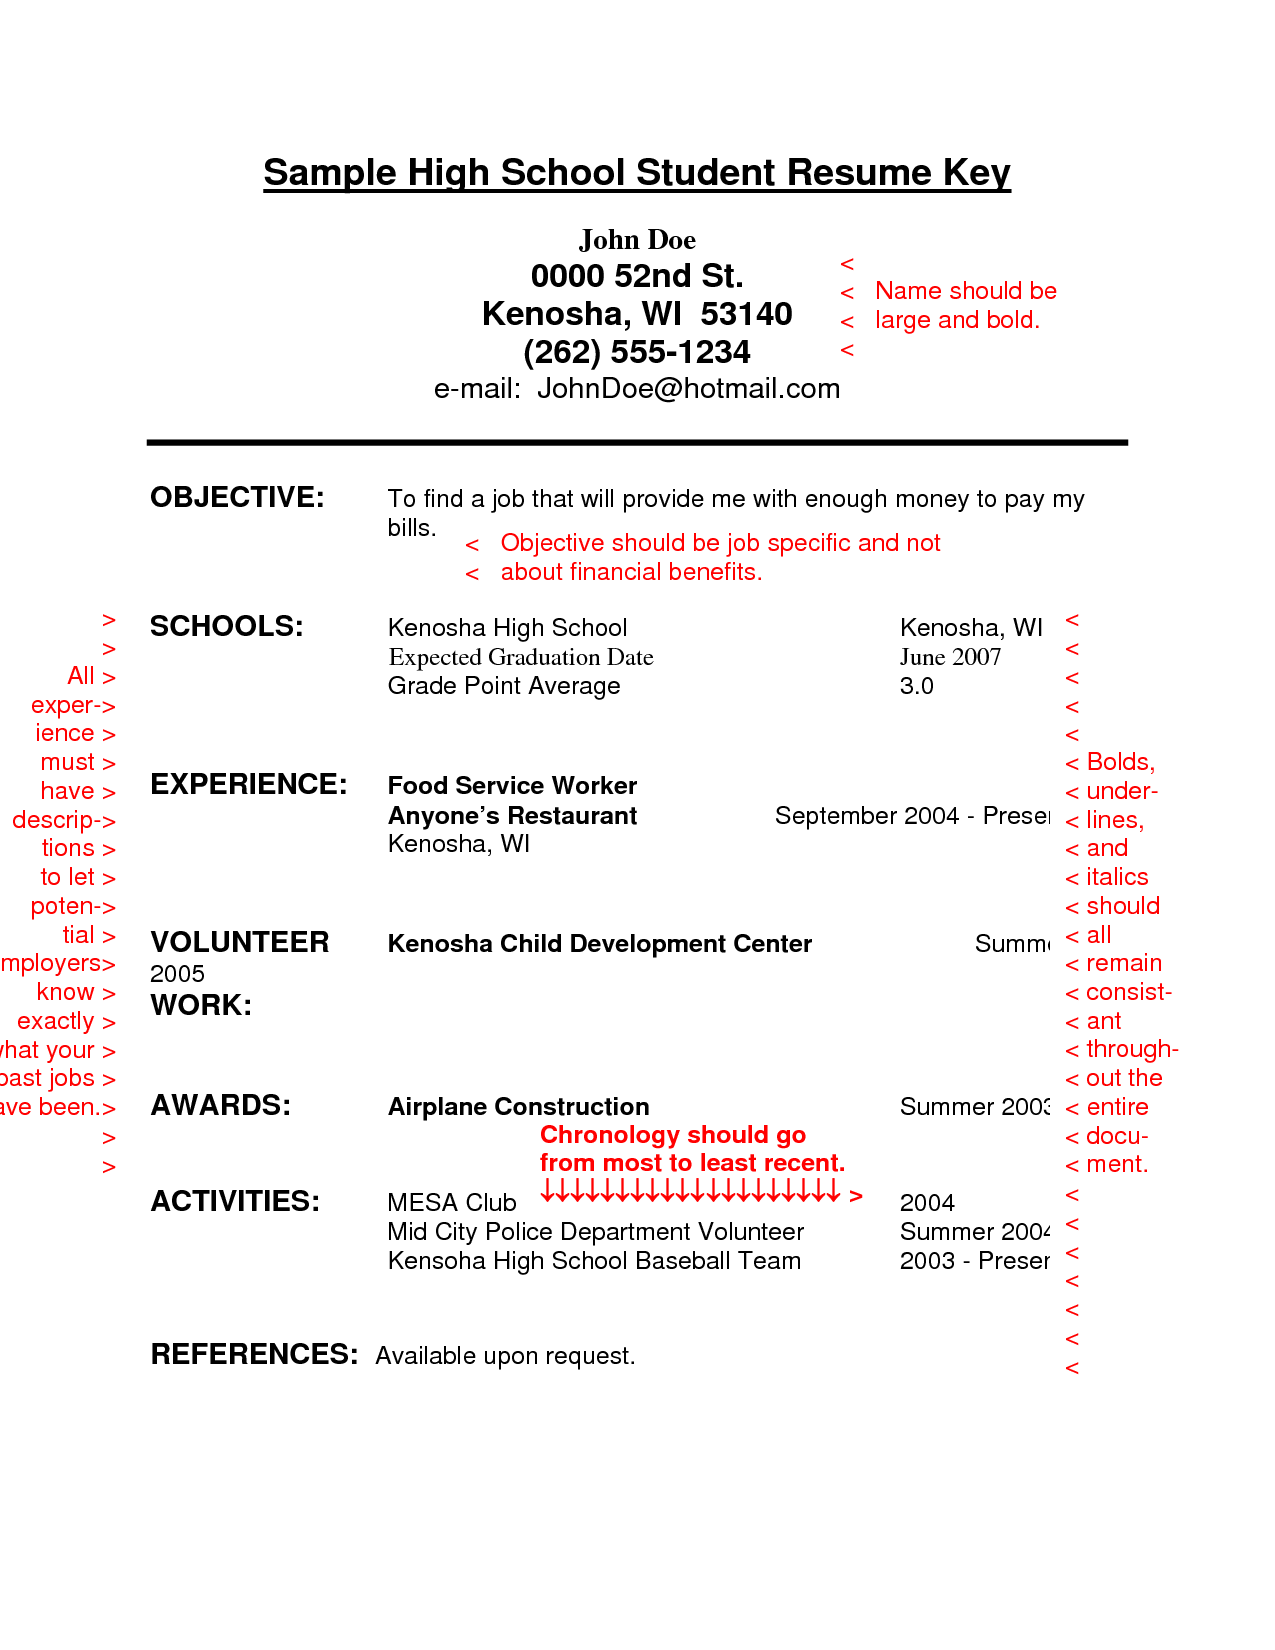 resume sample for high school students with no experience httpwww